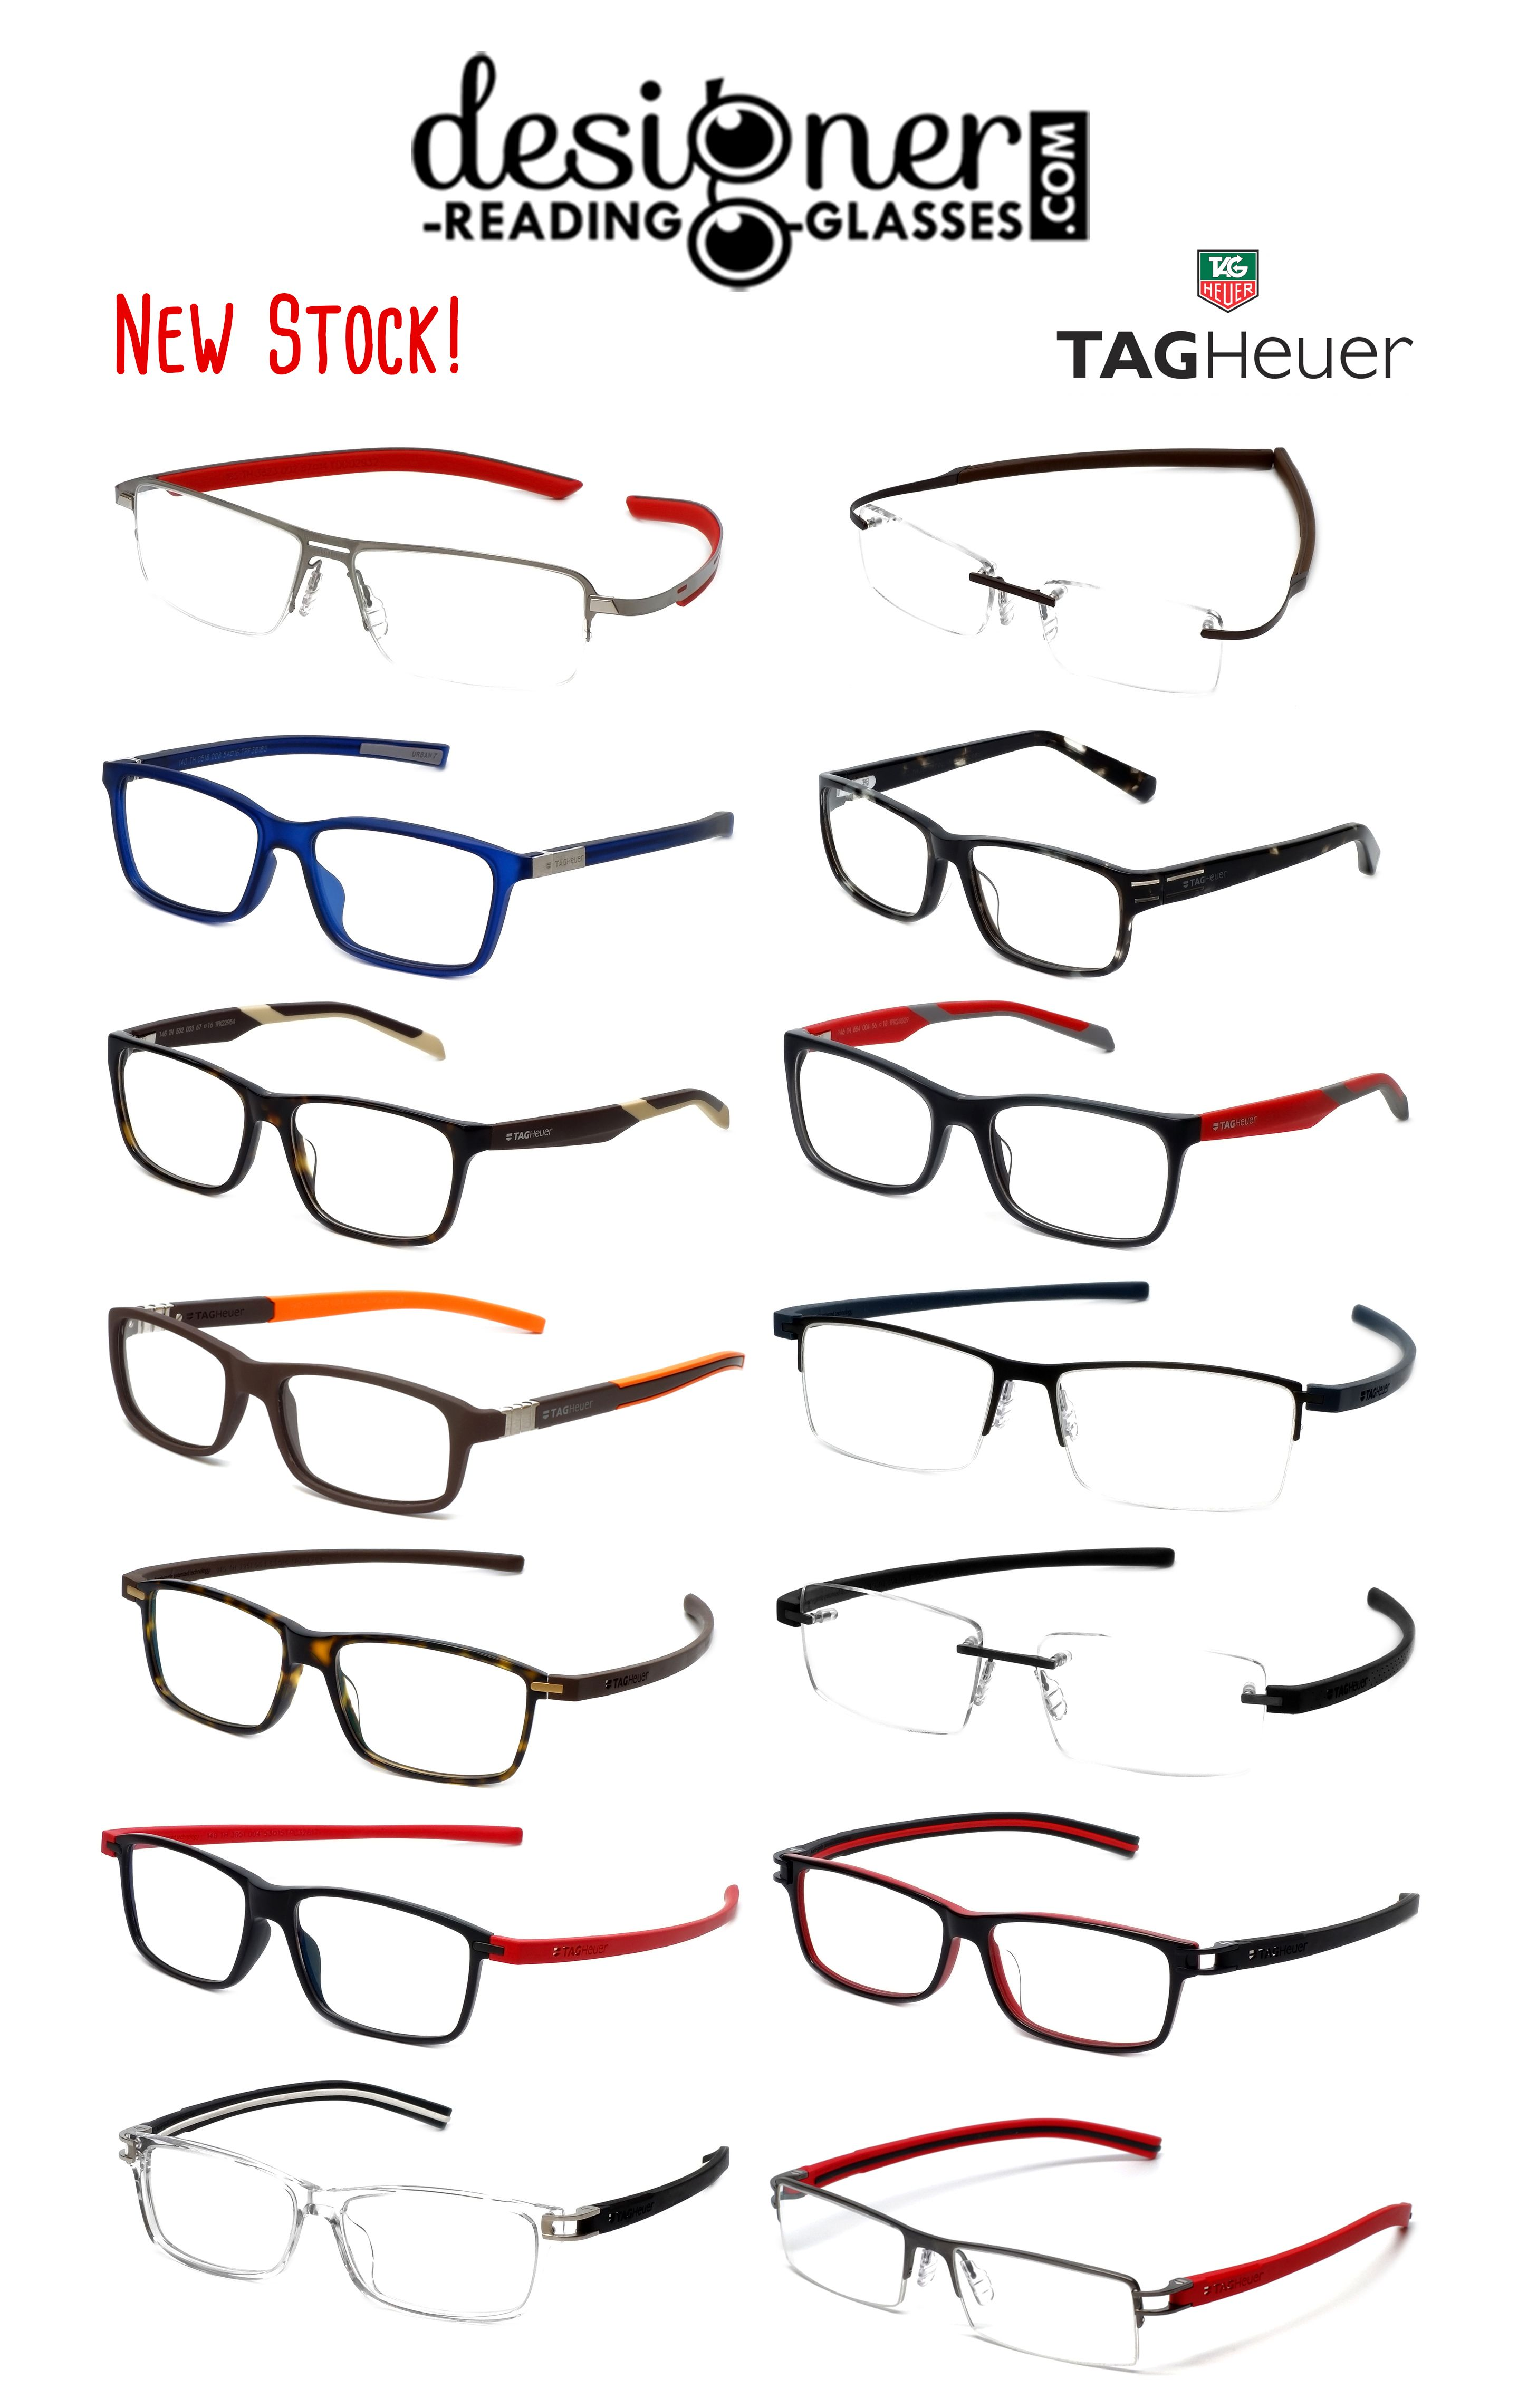 f8c6f6e616 Tag Heuer optical glasses now available in a variety of styles!  eyewear   designer  tagheuer